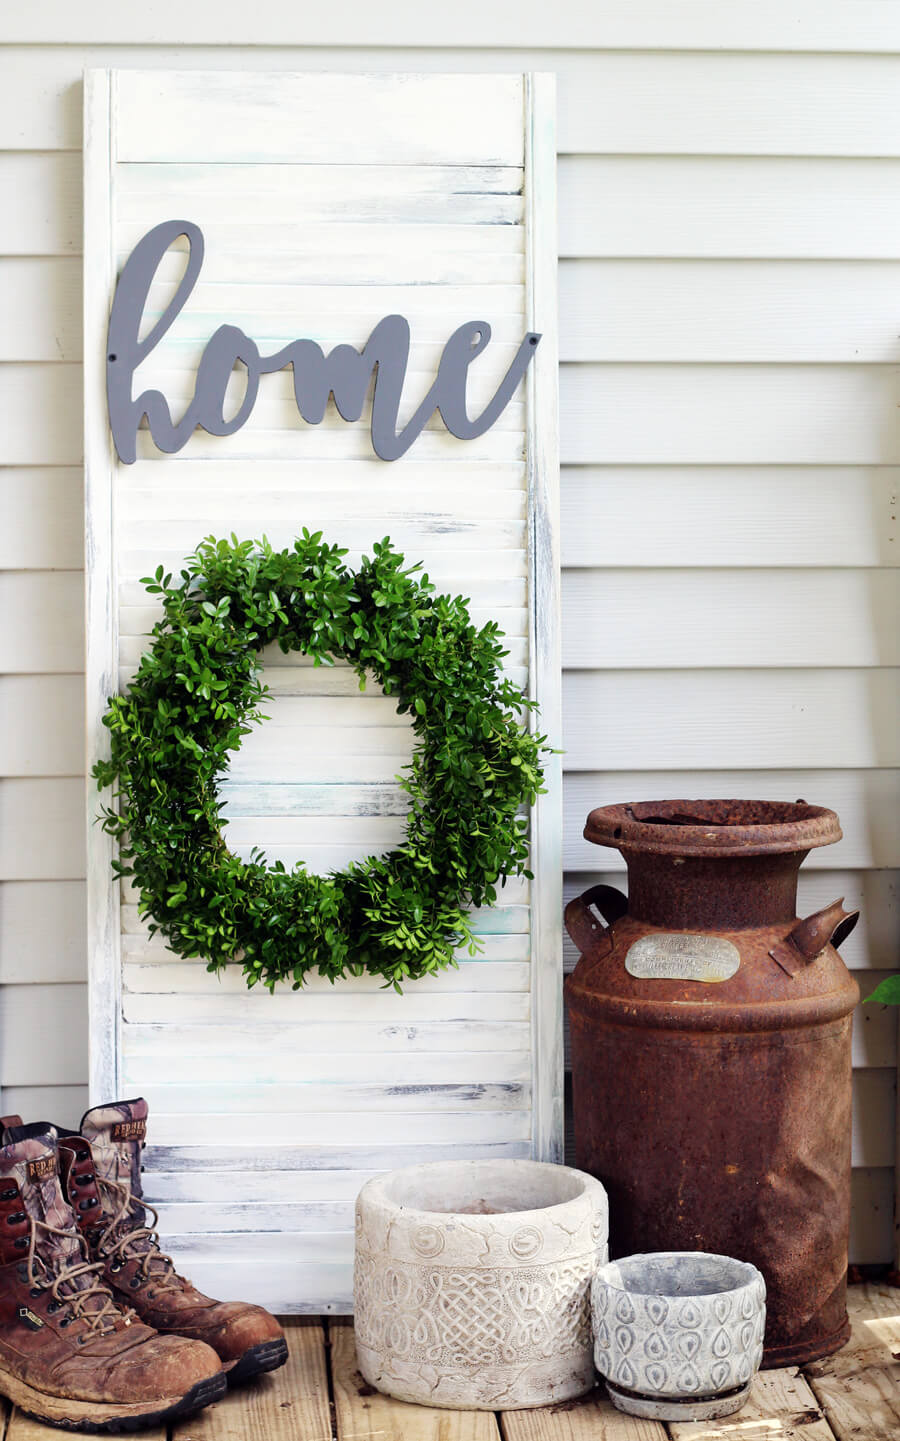 How to Make Rustic Wall Decor from a Shutter